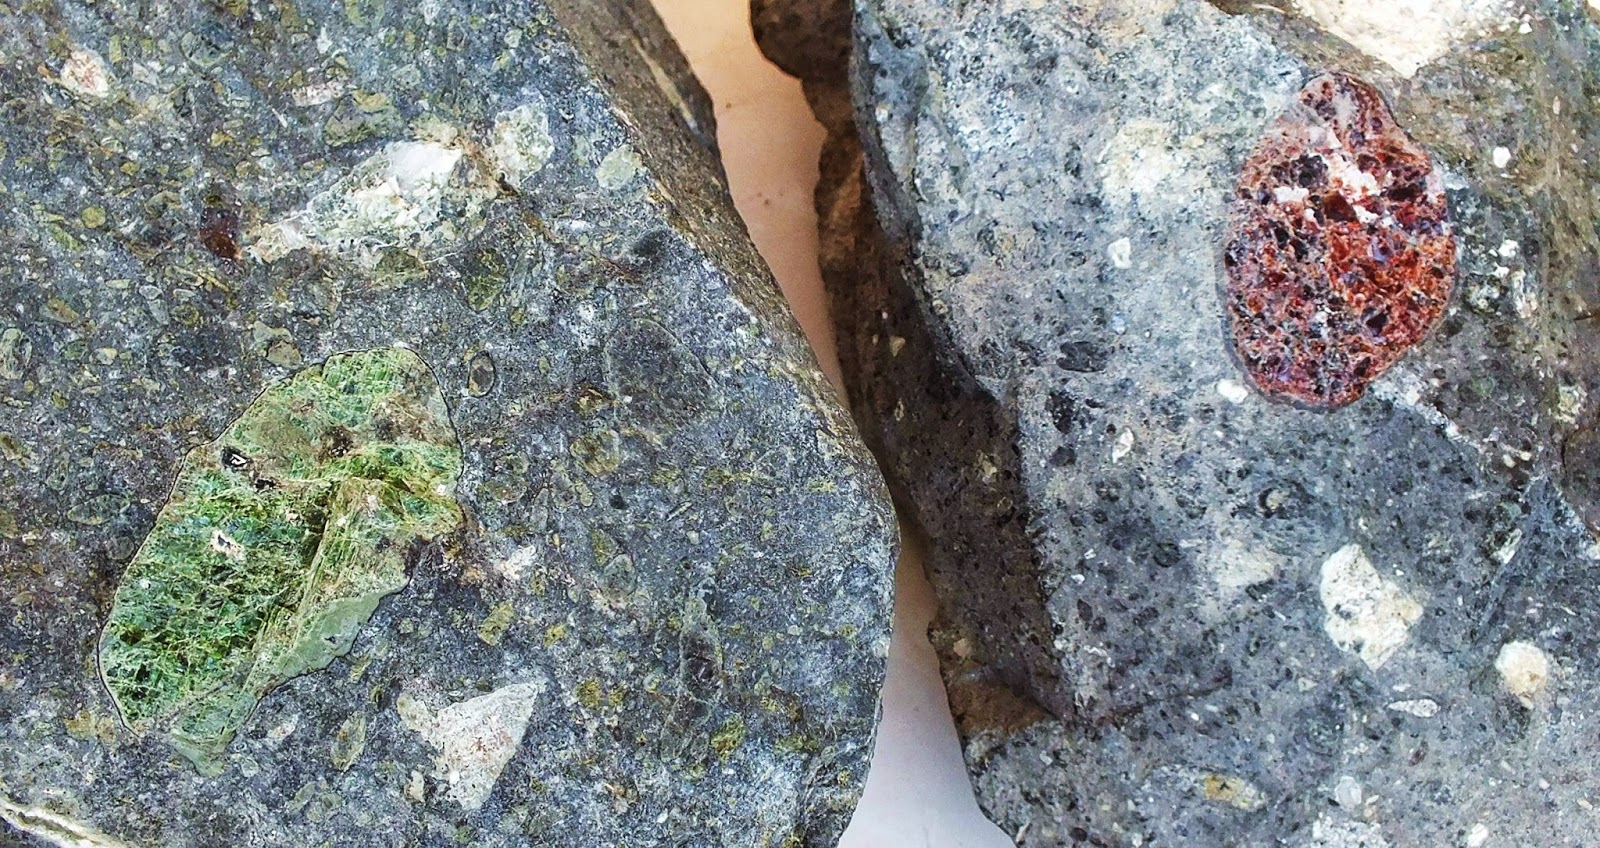 Diamond Indicator Minerals Chromian Diopside To The Left And Pyrope Garnet To The Right In Sloan Kimberlite Specimens